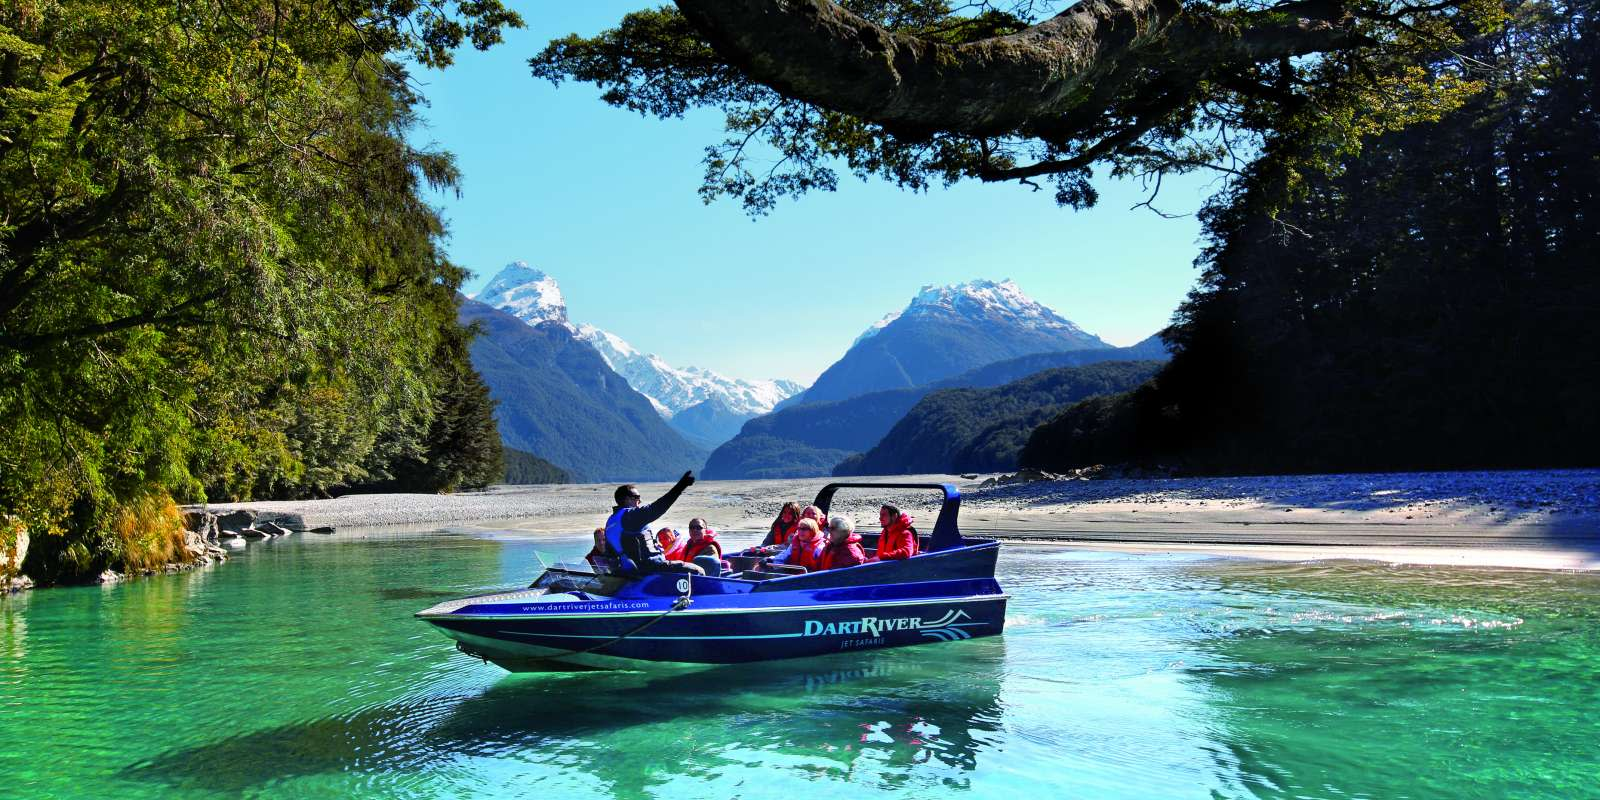 Dart River Jetboat